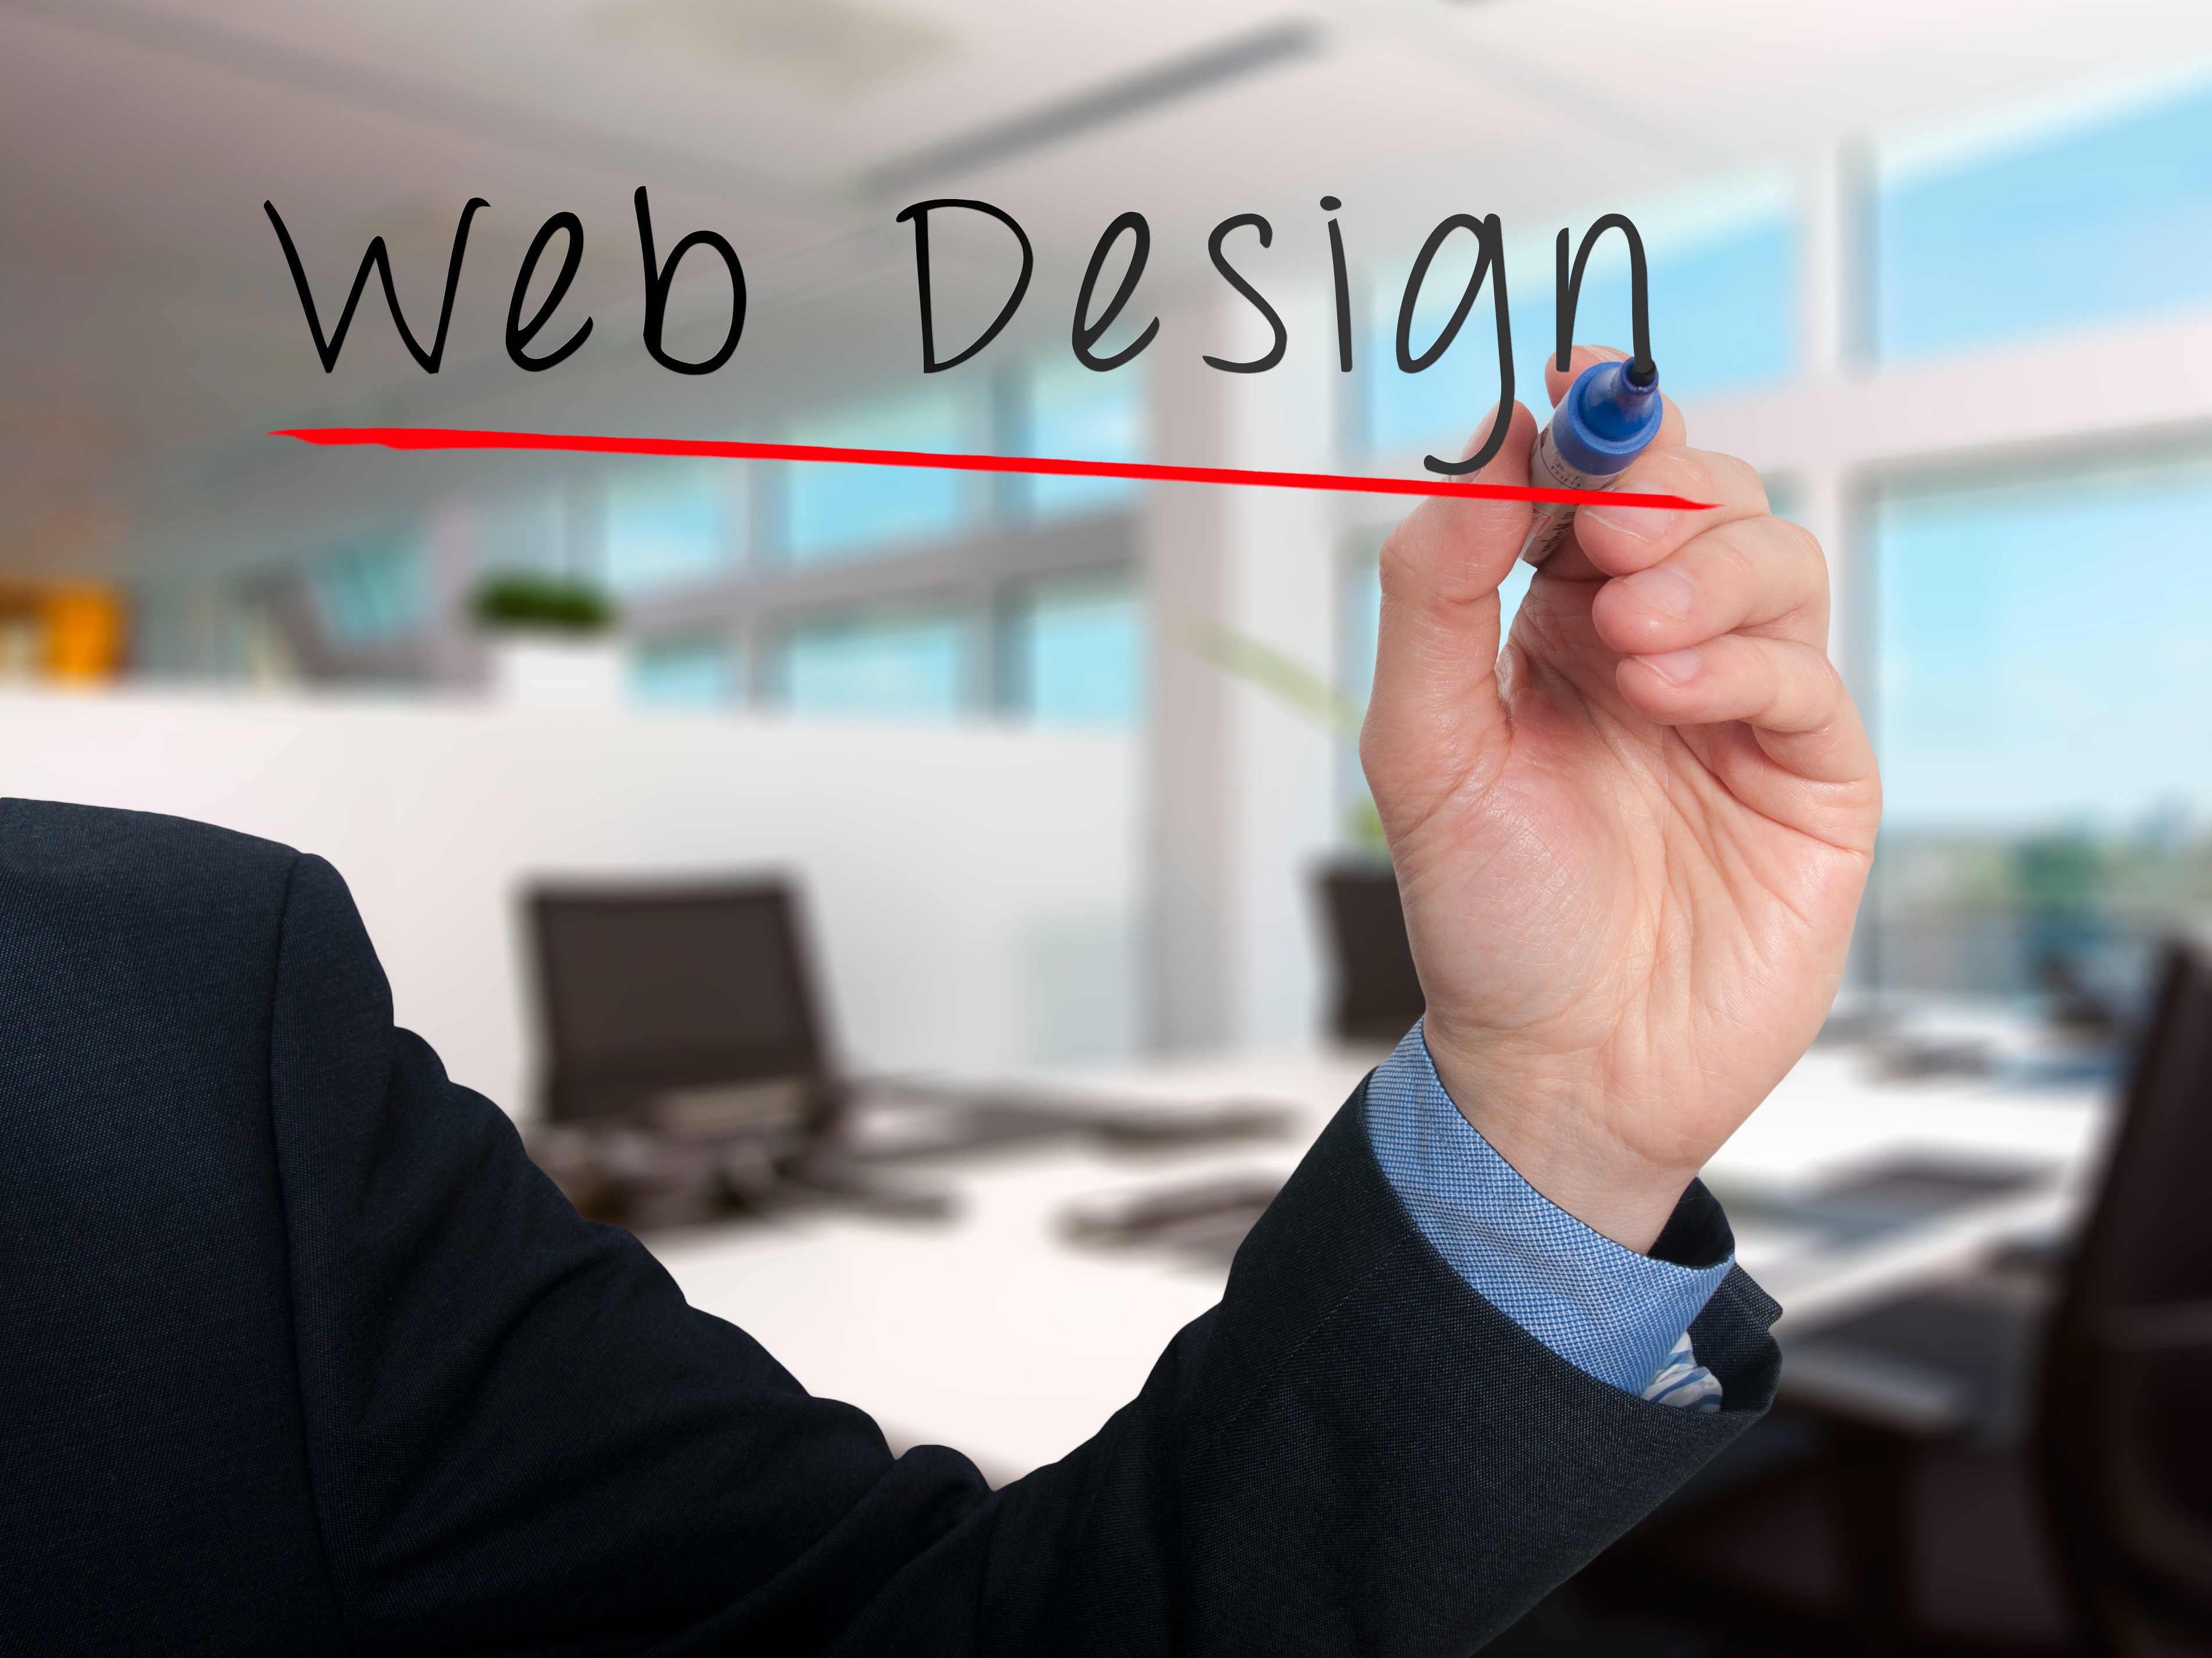 2016 has a lot in store when it comes to web design trends.